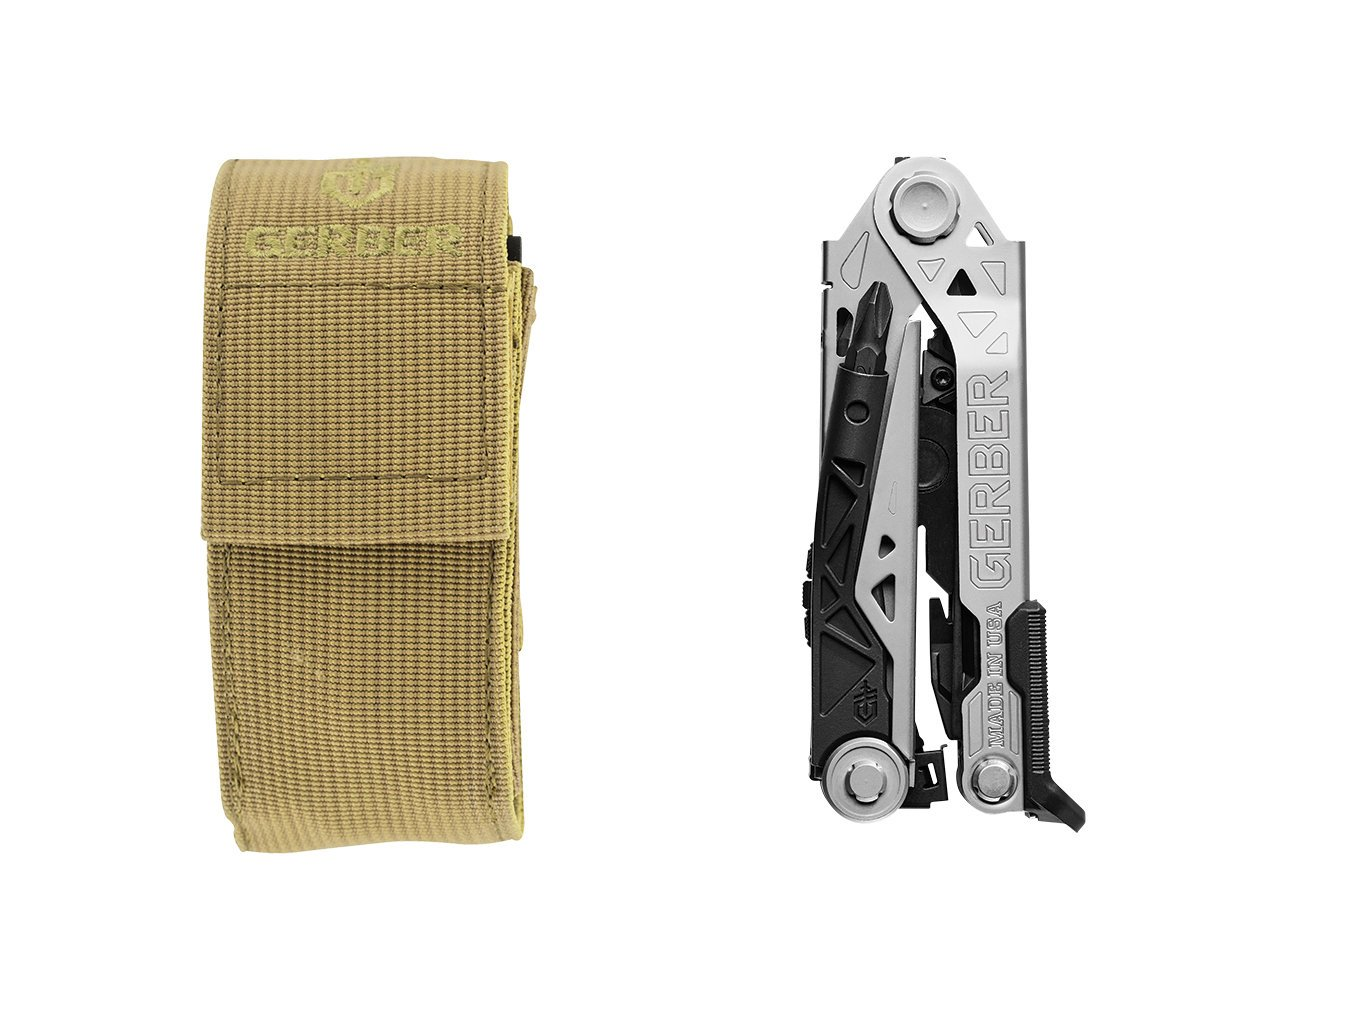 Gerber Center-Drive Multi-Tool | Coyote Brown Molle Sheath [30-001195]